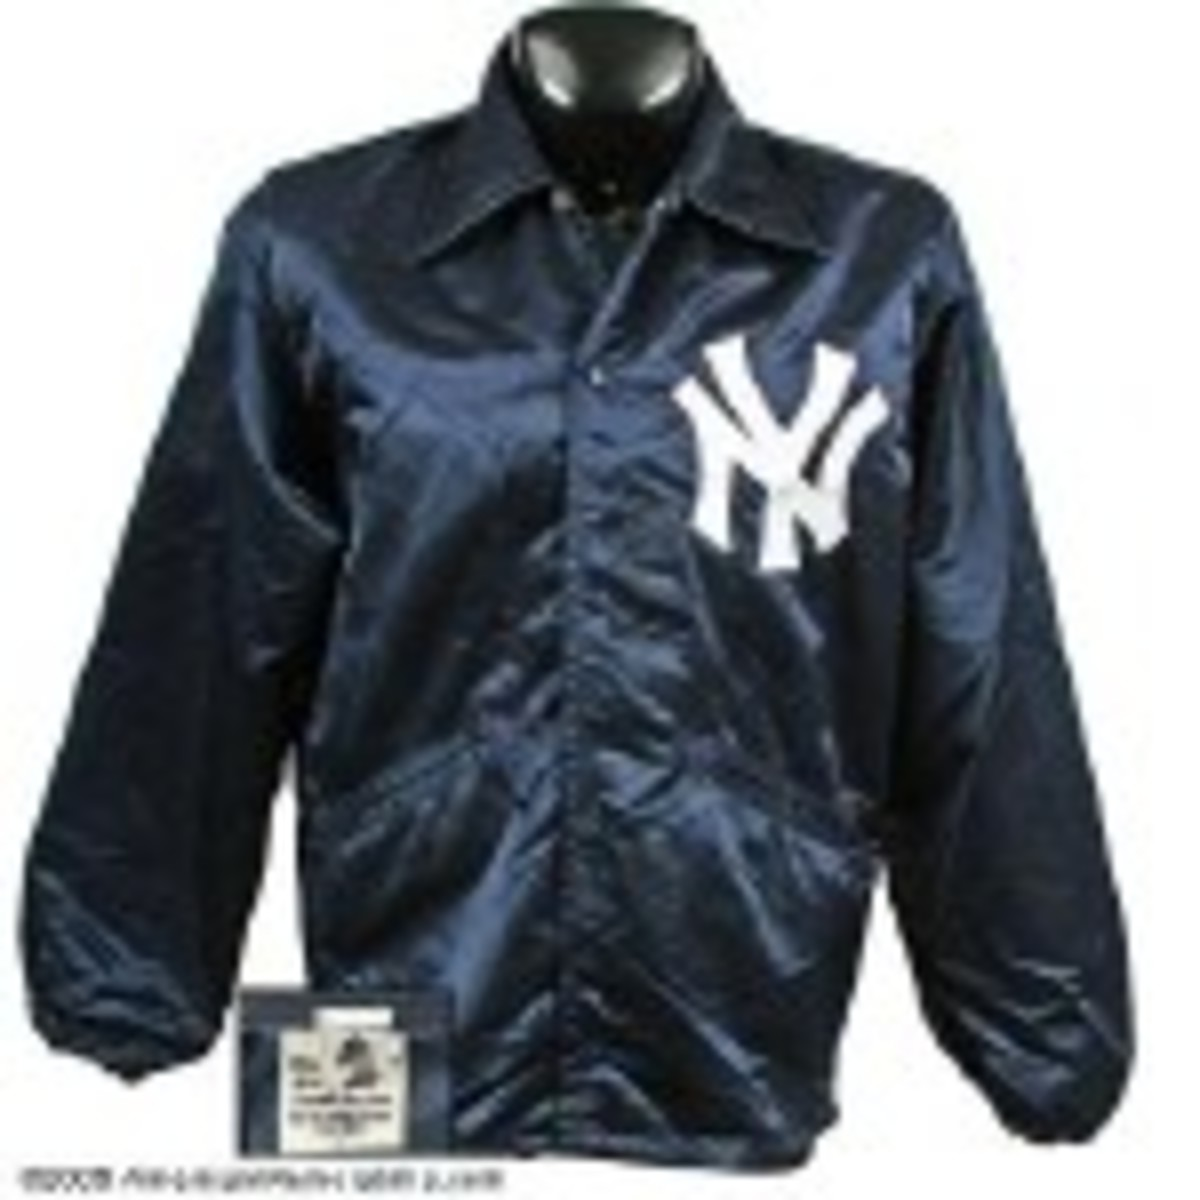 billy martin jacket.jpg